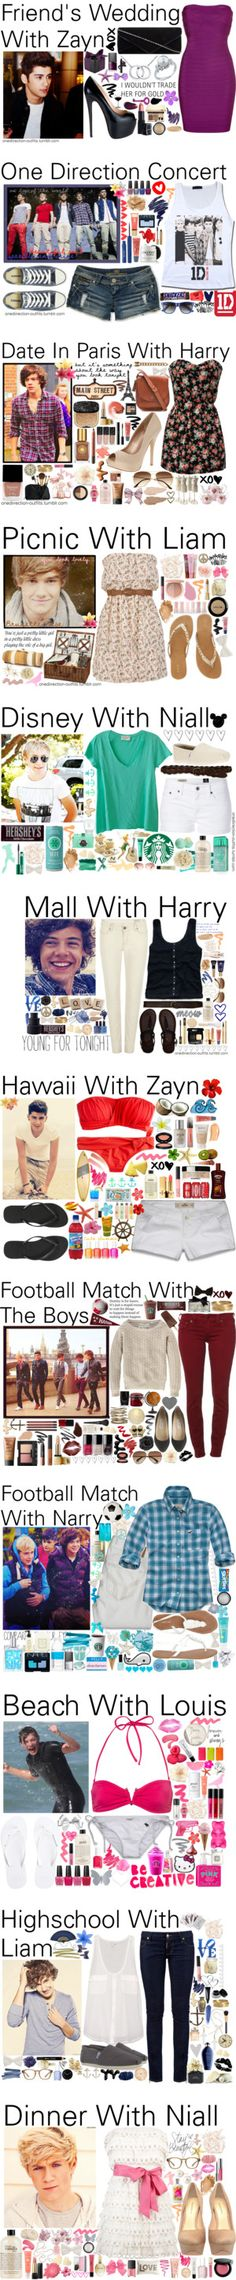 """Outfits #20 - 40 ♥"" by onedirection-outfits ❤ liked on Polyvore"